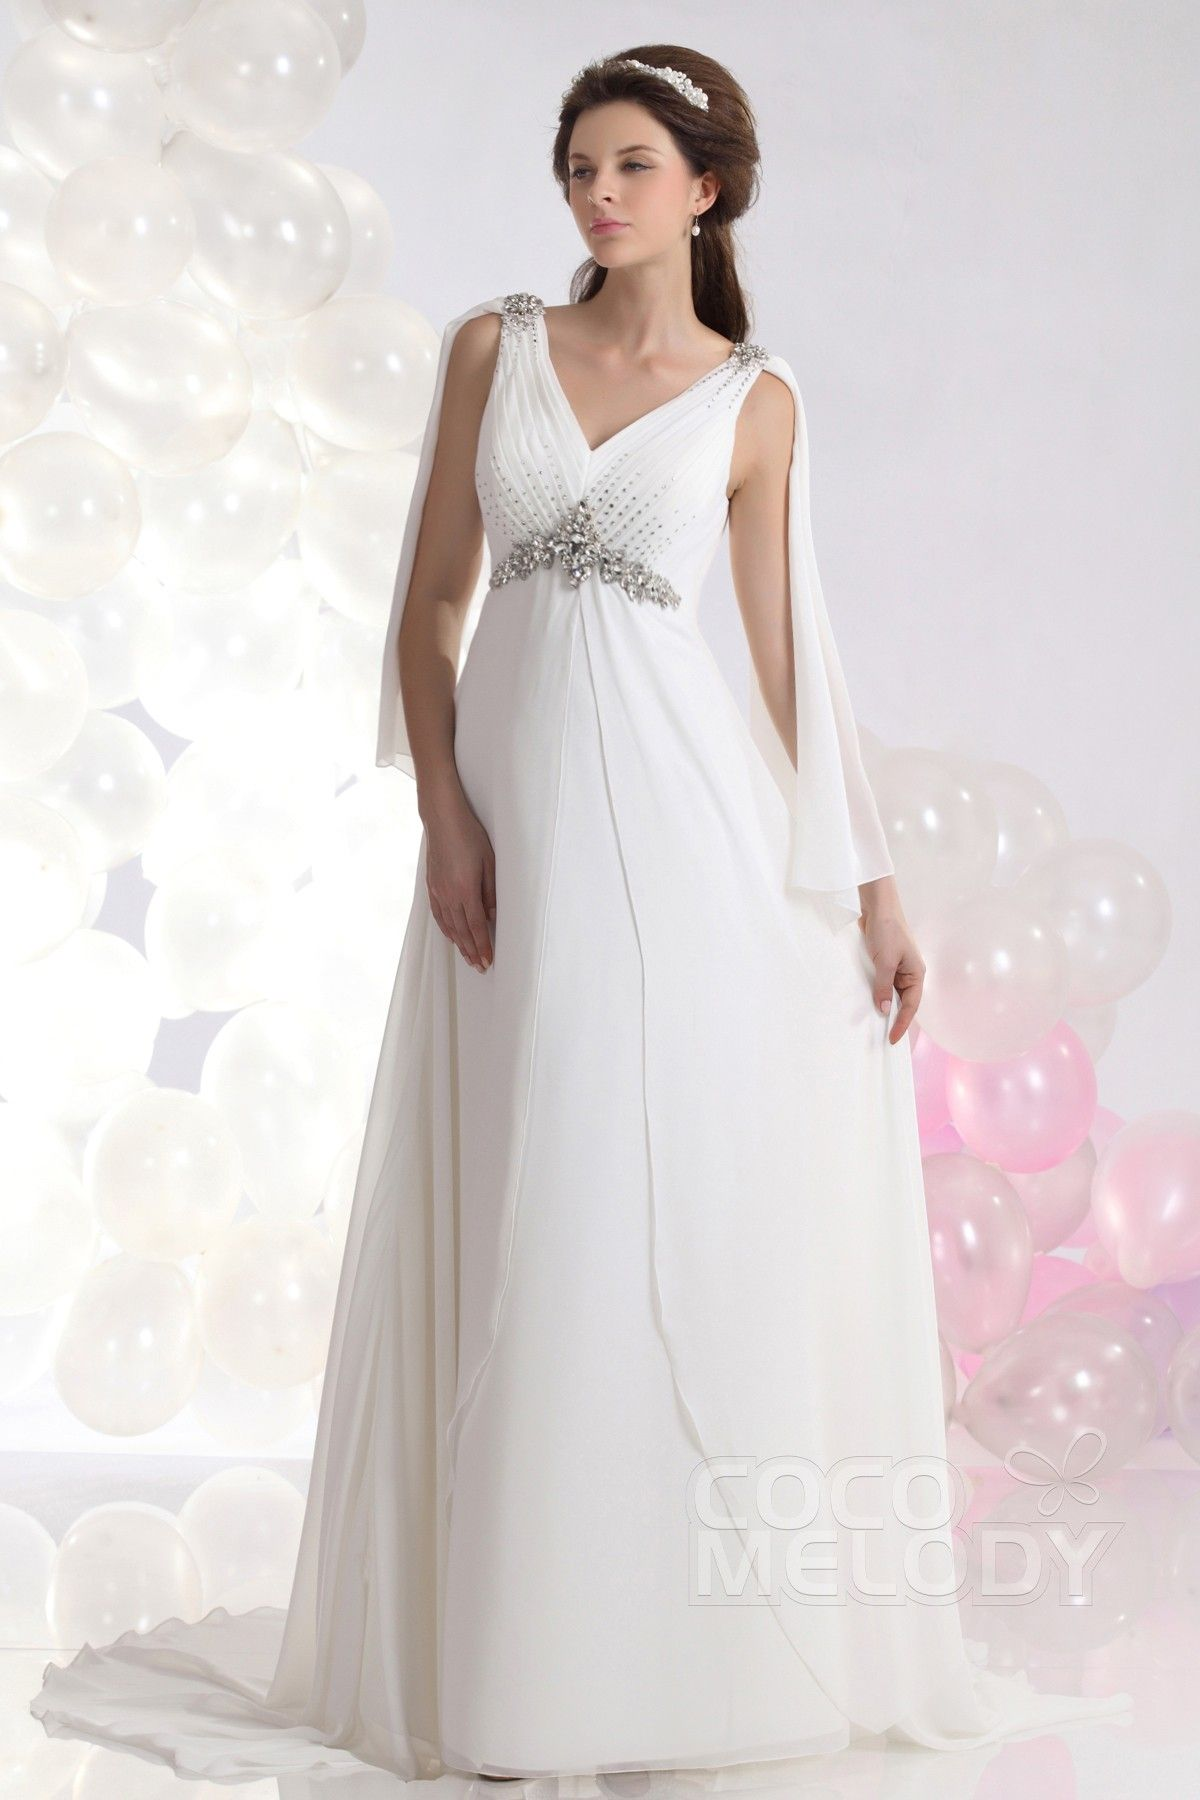 Chiffon wedding dresses  Perfect SheathColumn VNeck Court Train Chiffon Wedding Dress